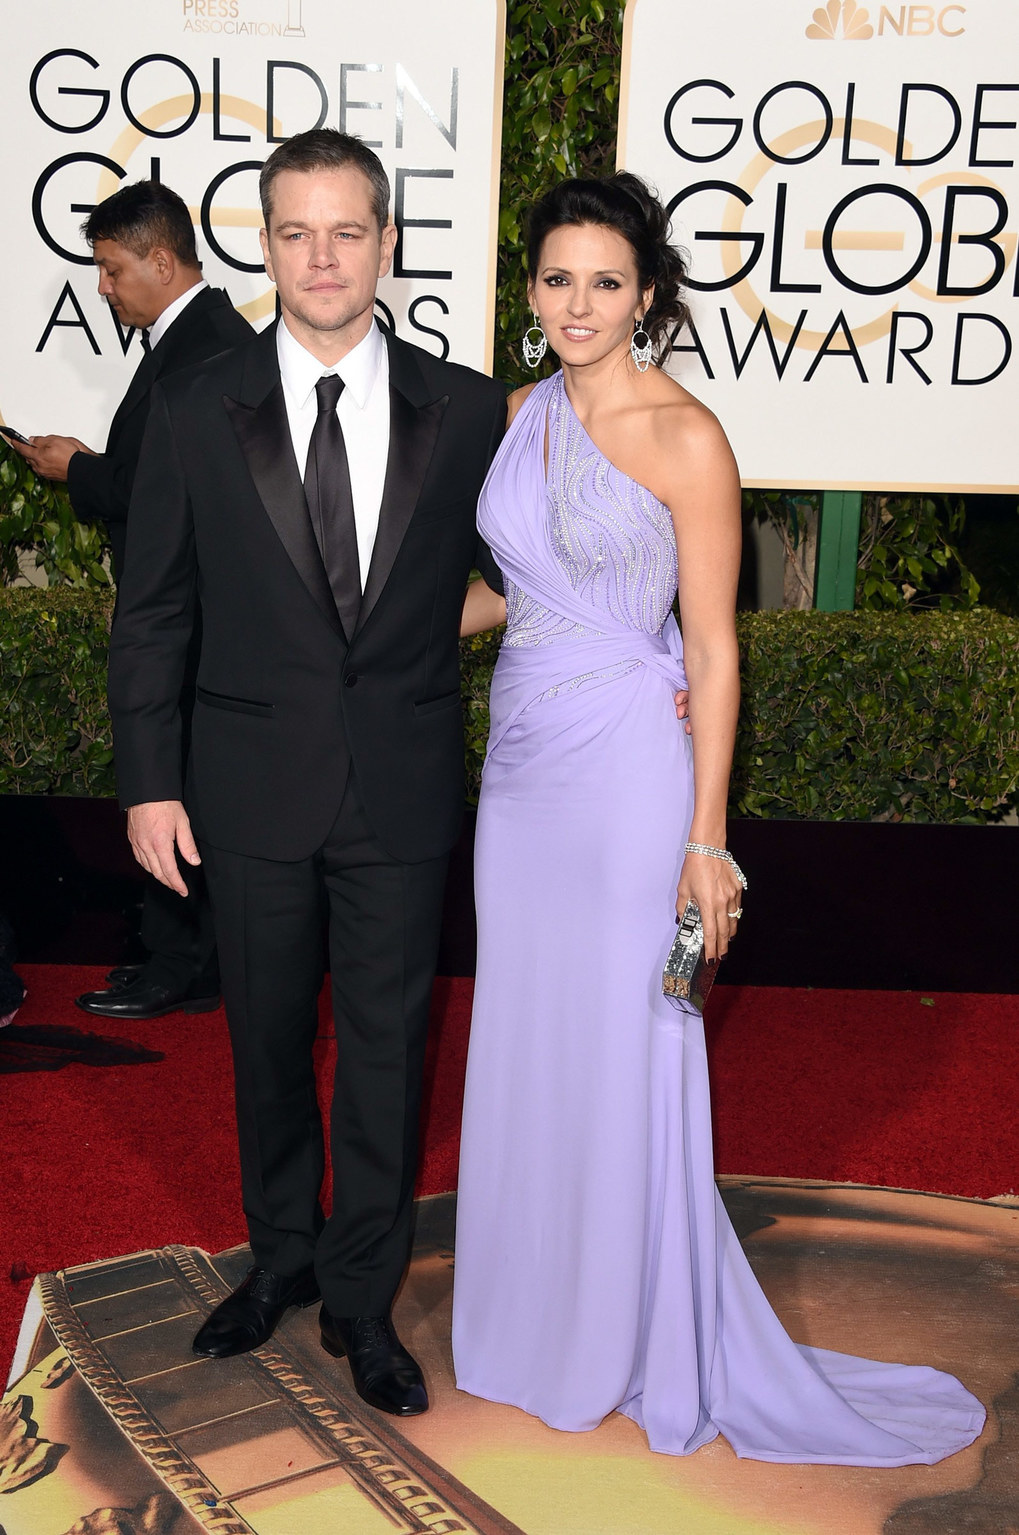 Actor Matt Damon and Luciana Damon attend the 73rd Annual Golden Globe Awards held at the Beverly Hilton Hotel on January 10, 2016 in Beverly Hills, California.  (Photo by Jason Merritt/Getty Images)